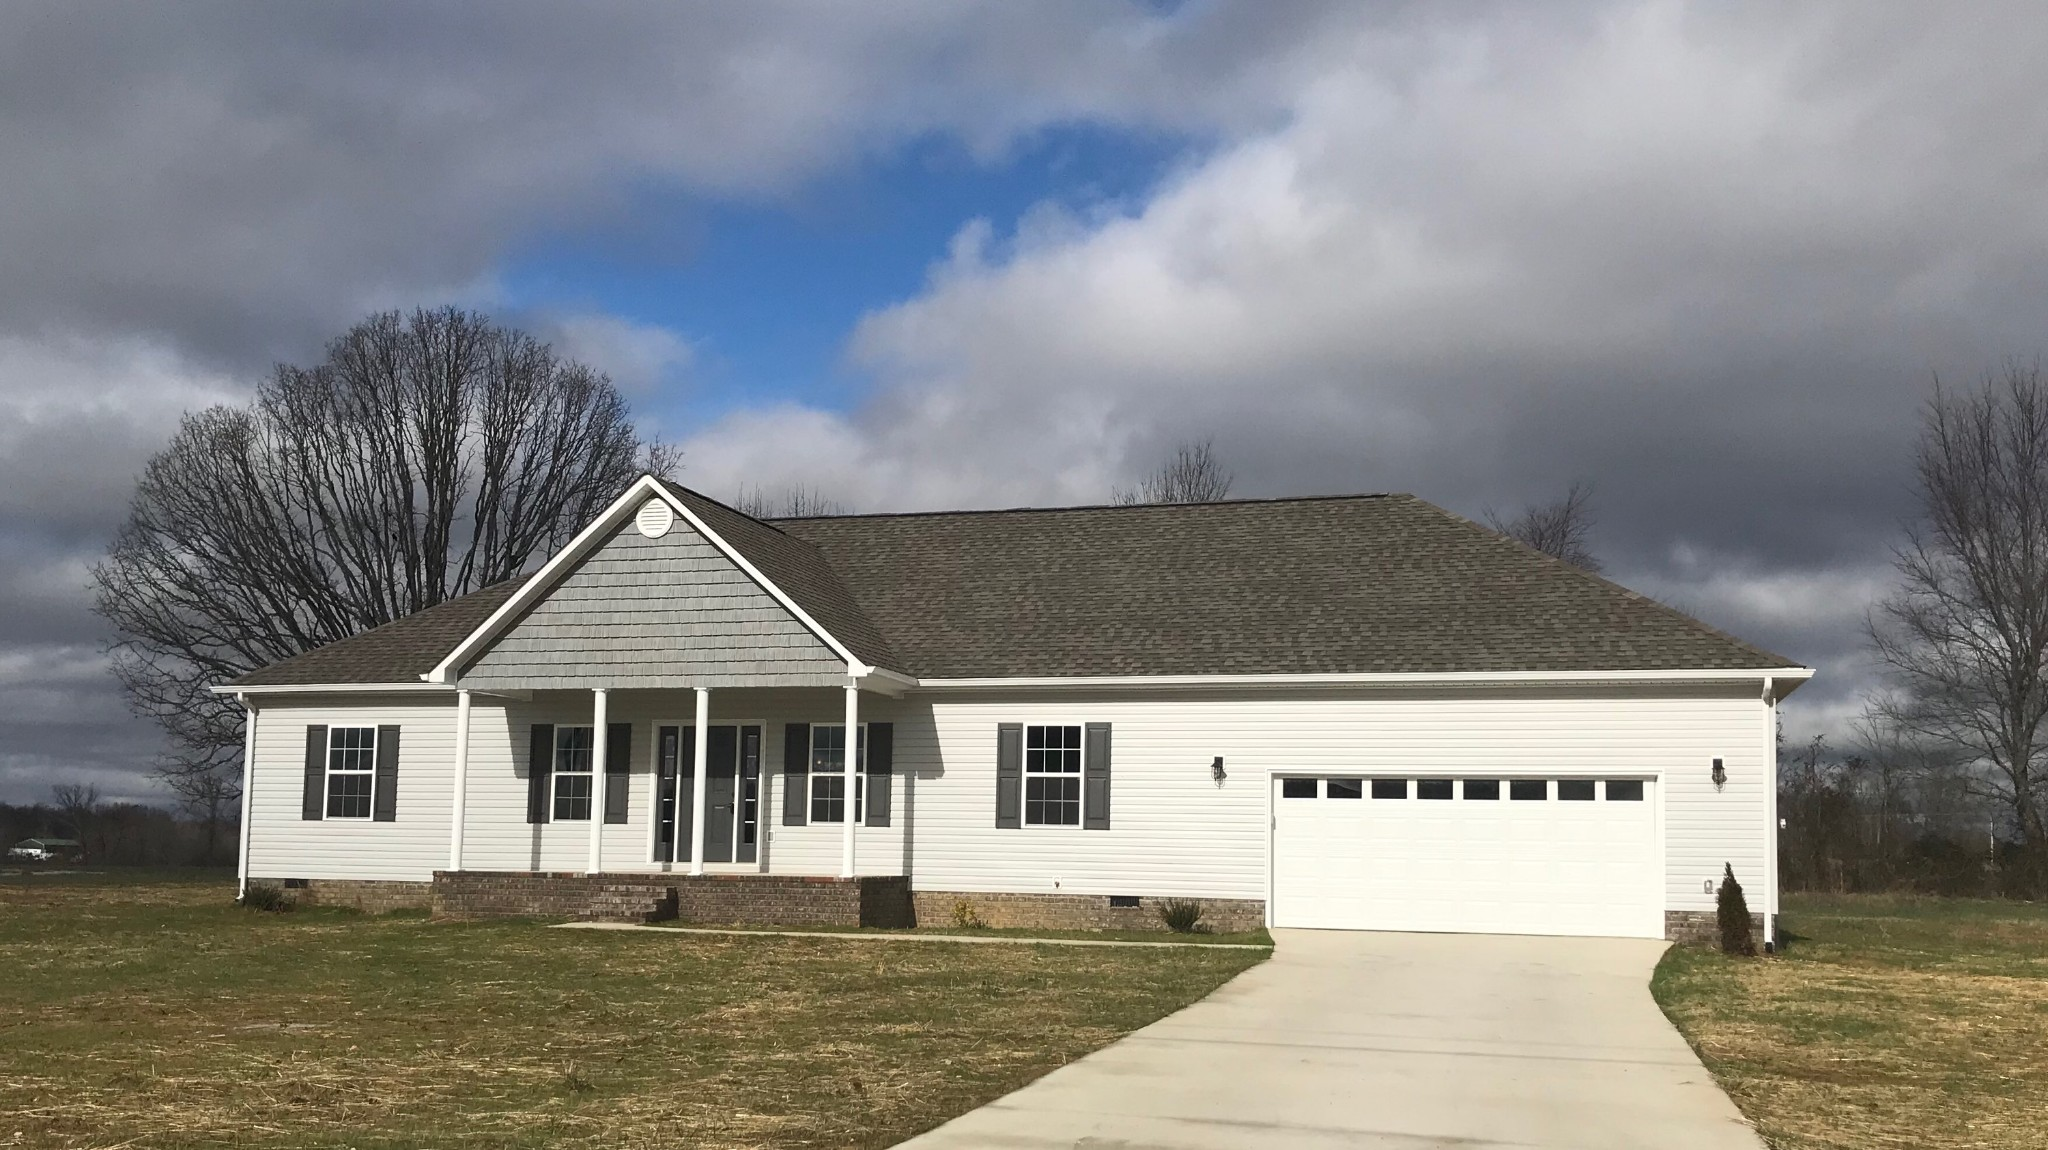 431 Spring Water Dr, Summertown, TN 38483 - Summertown, TN real estate listing